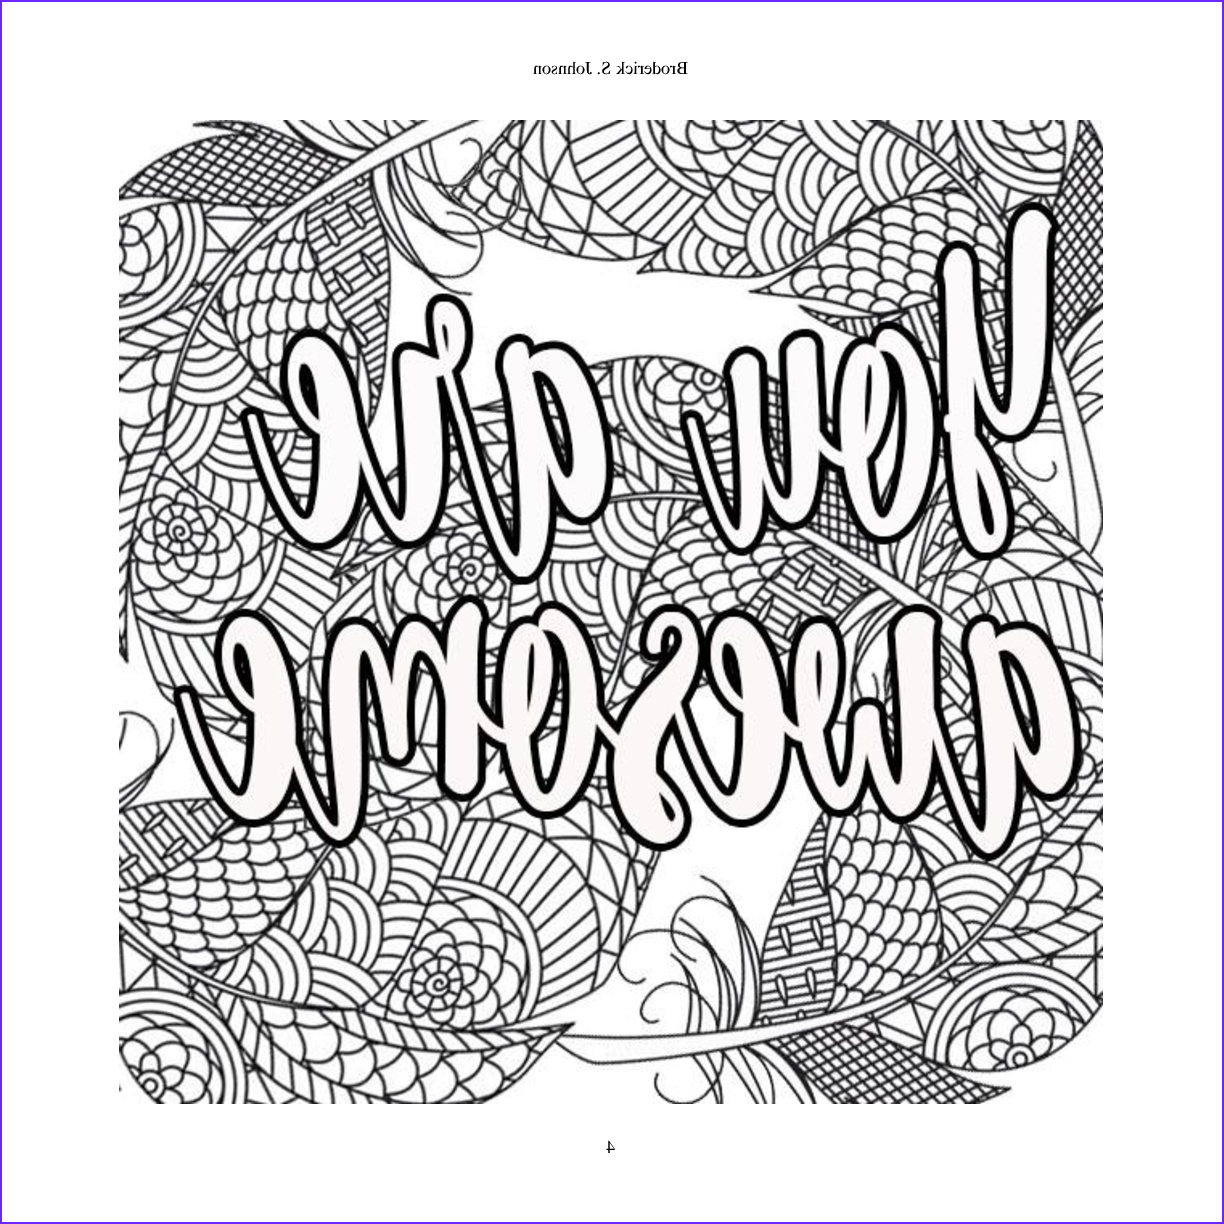 Inspirational Quotes Coloring Page for Adults Beautiful Images Free Inspirational Adult Coloring Pages at Getcolorings